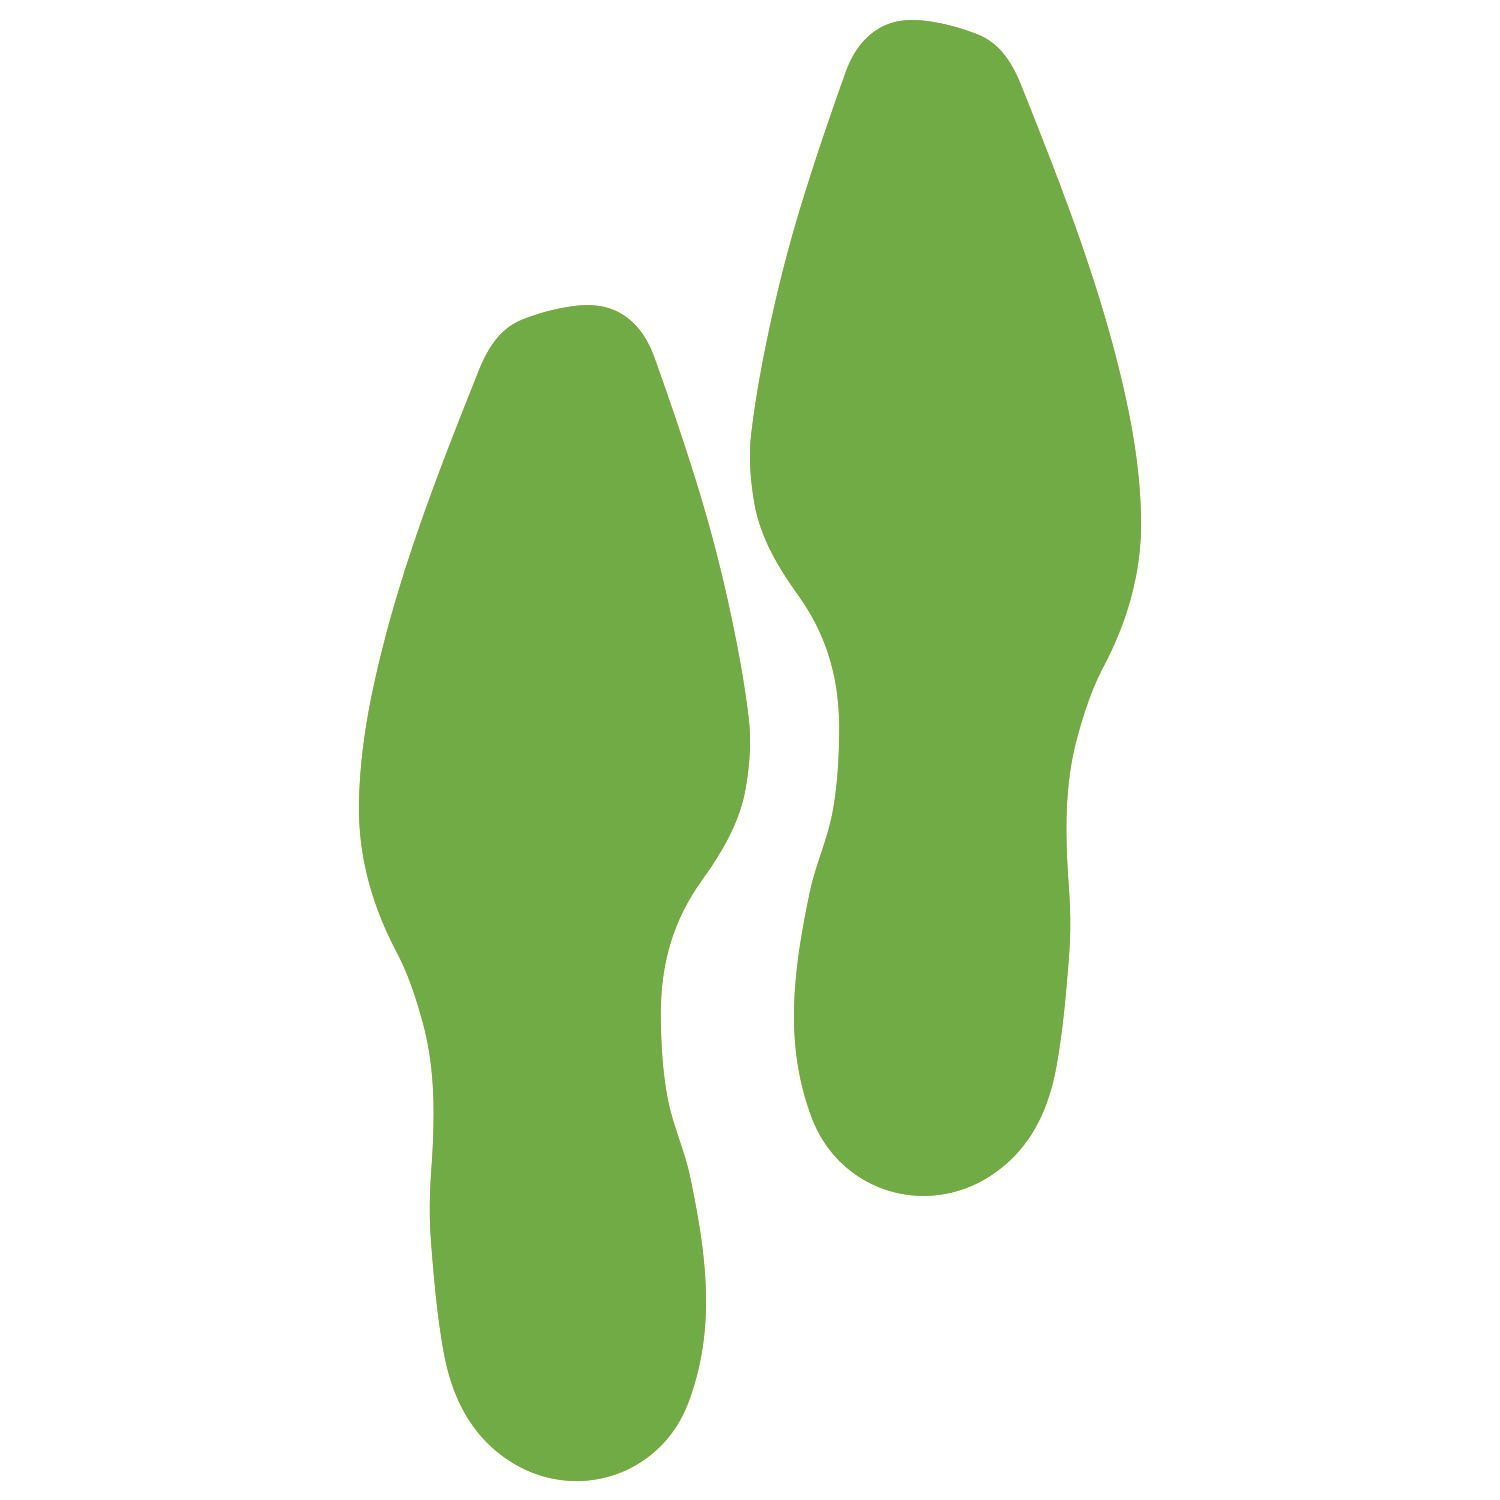 LiteMark 9 Inch Lime Dress Shoe Print Decal Stickers for Floors and Walls - Pack of 12 (6 Pairs)